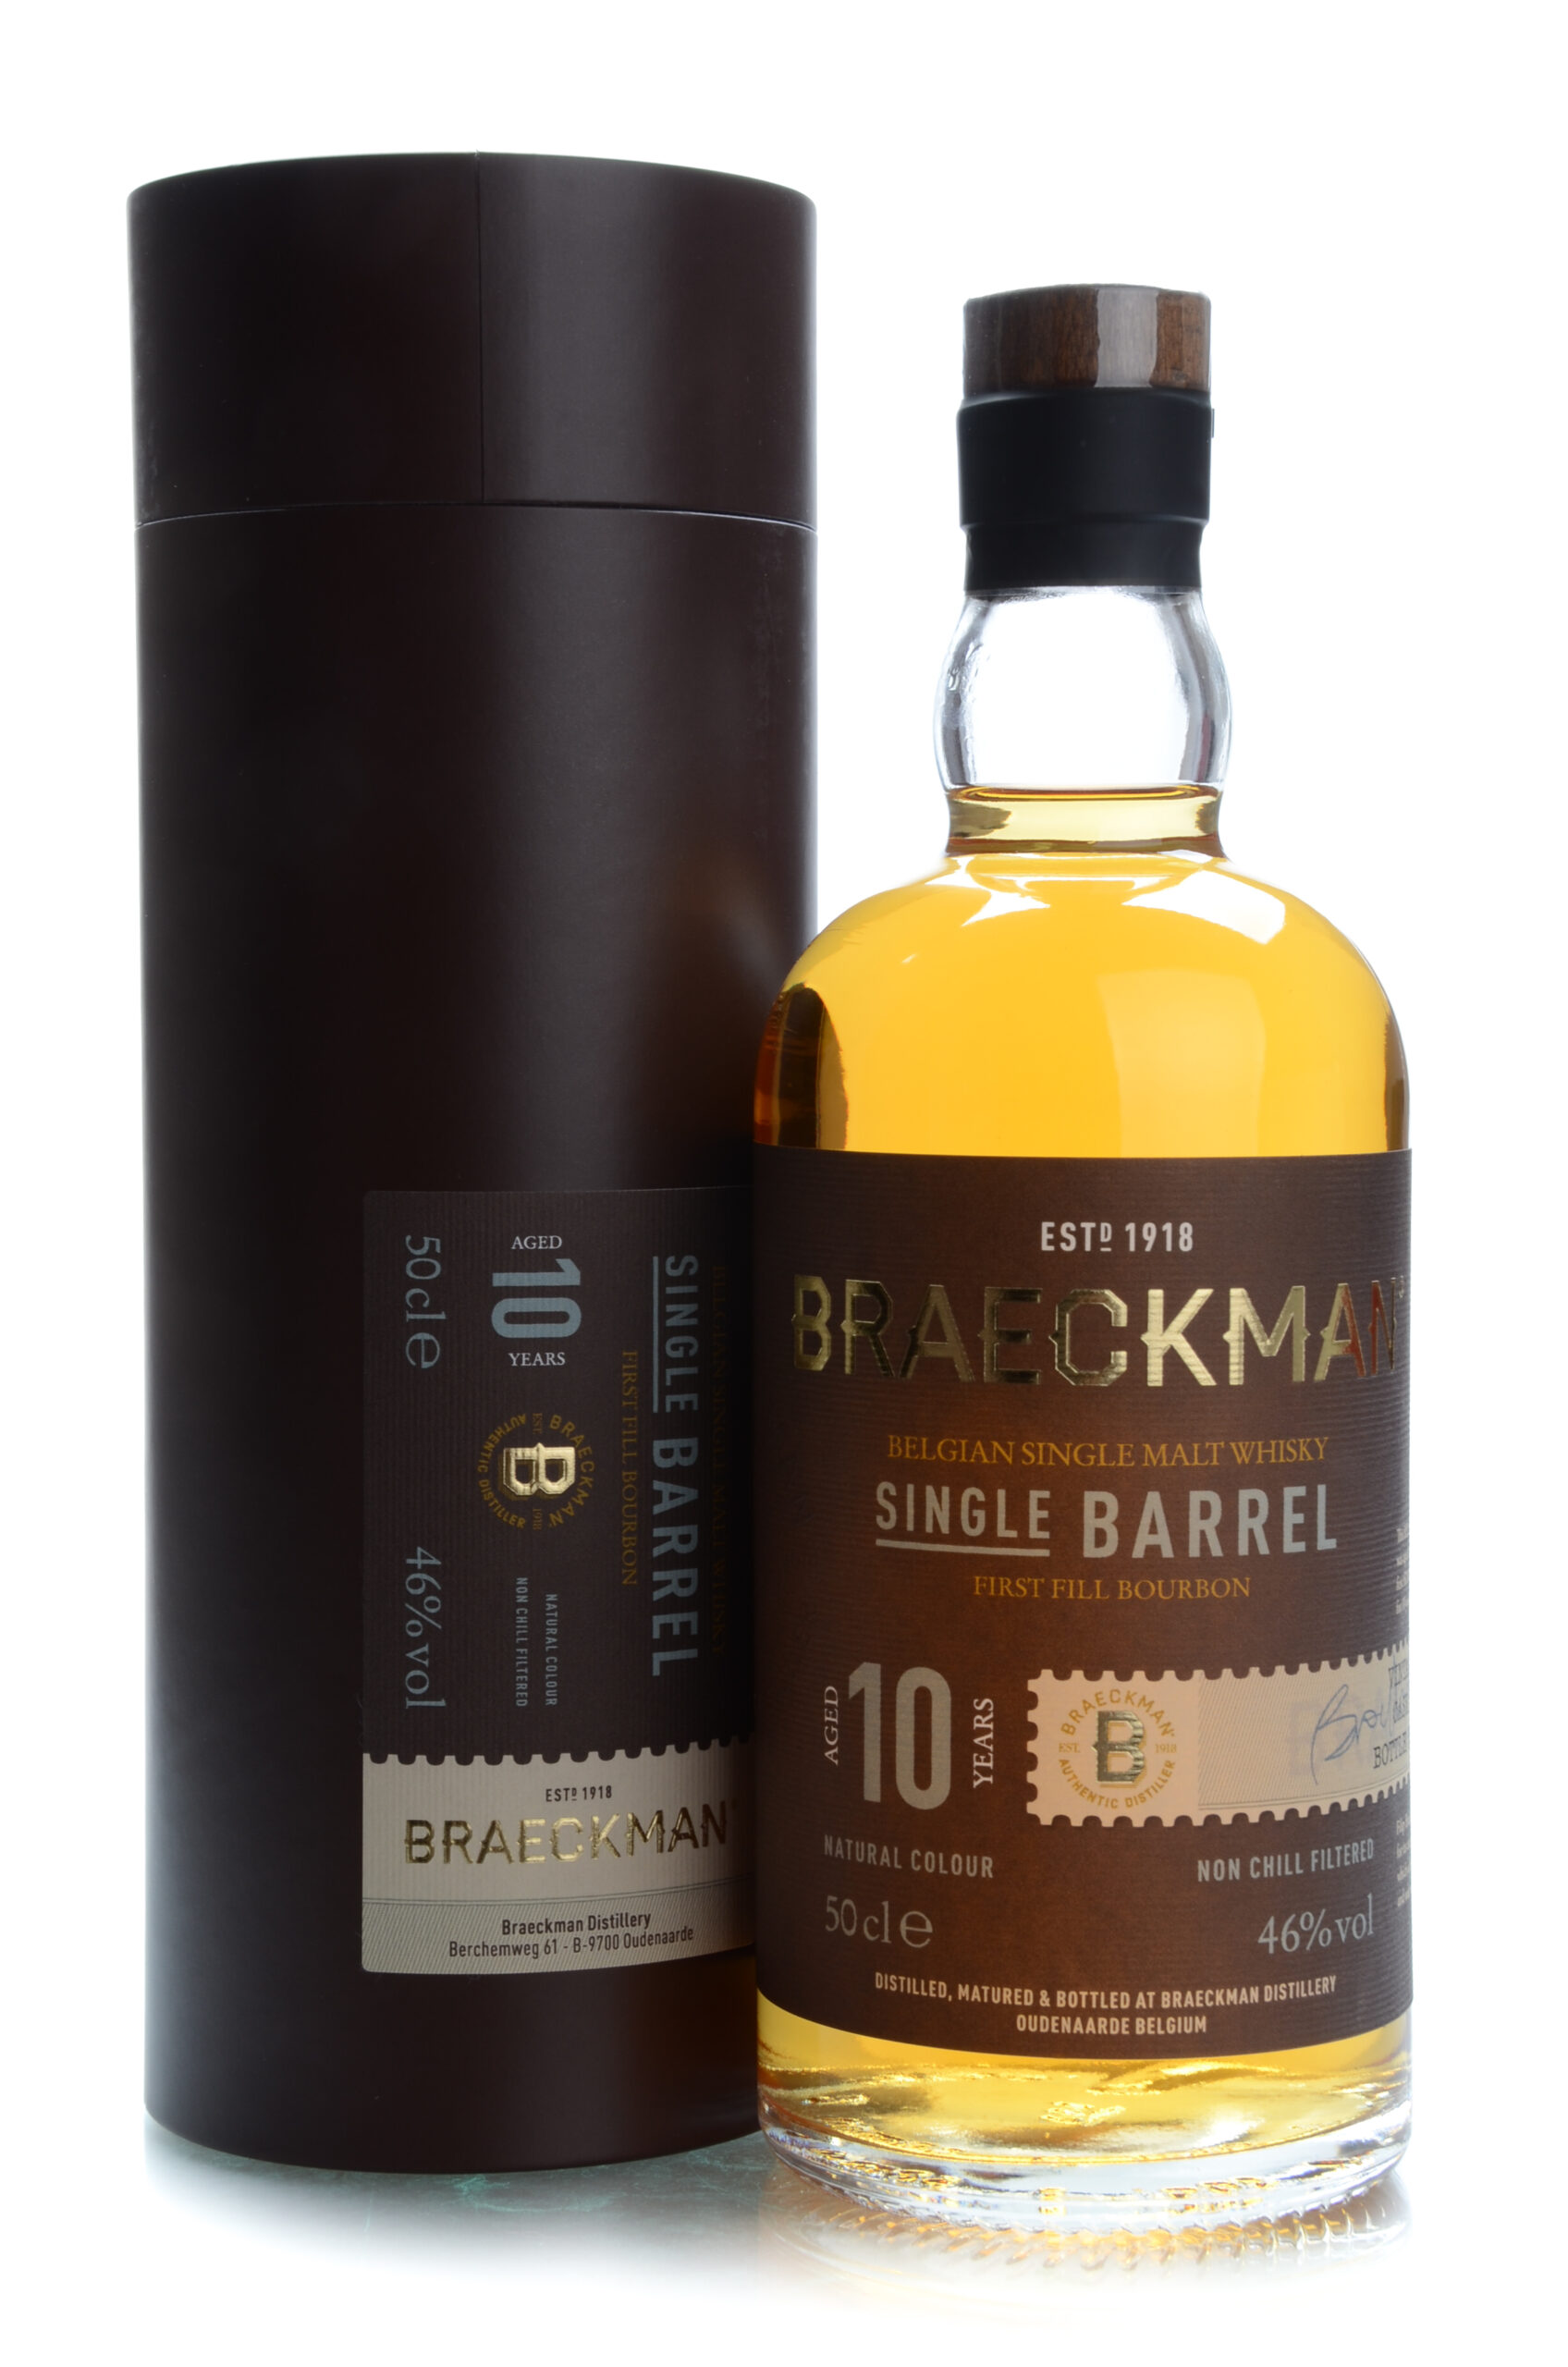 Braeckman 10 years first fill bourbon